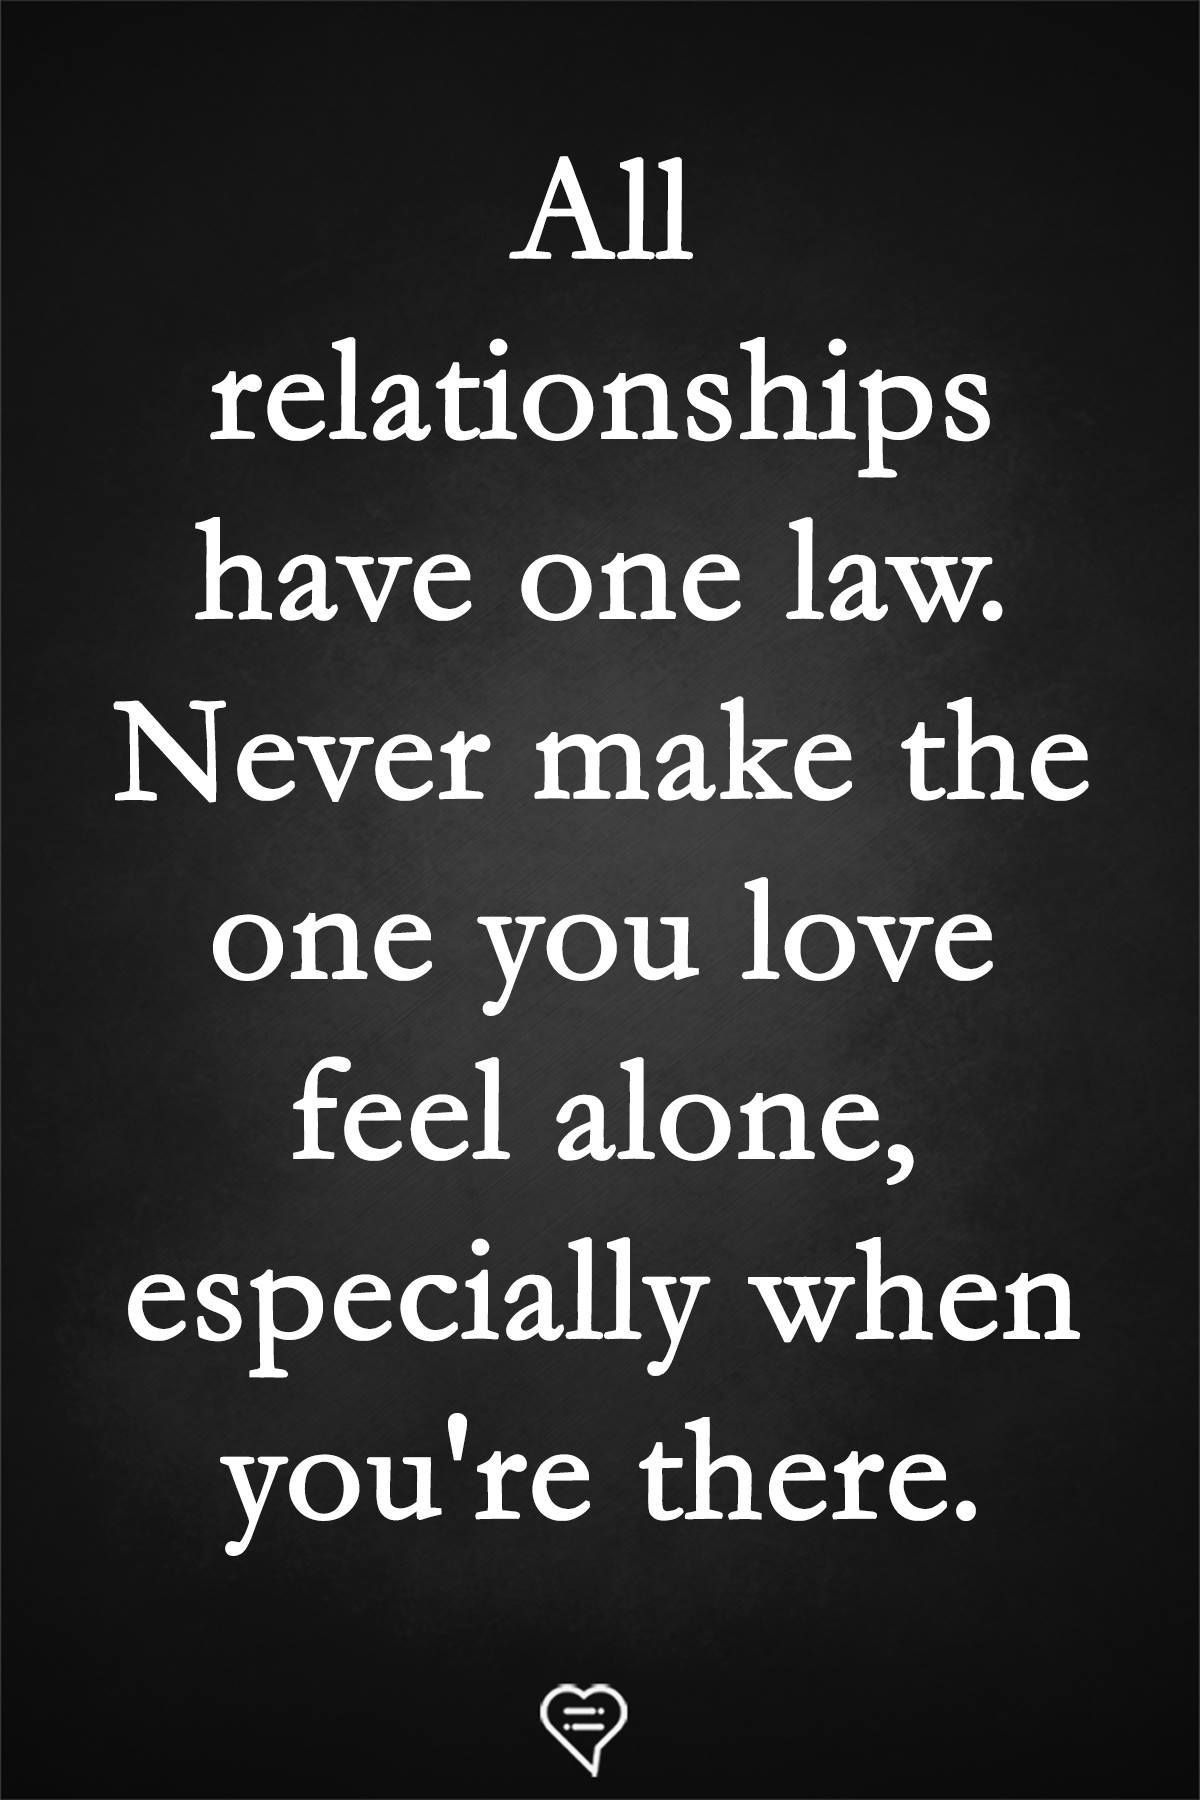 Pin By Emily Ladewig On Guiding 3 Love Quotes Pinterest Wisdom Quotes Hurt Quotes